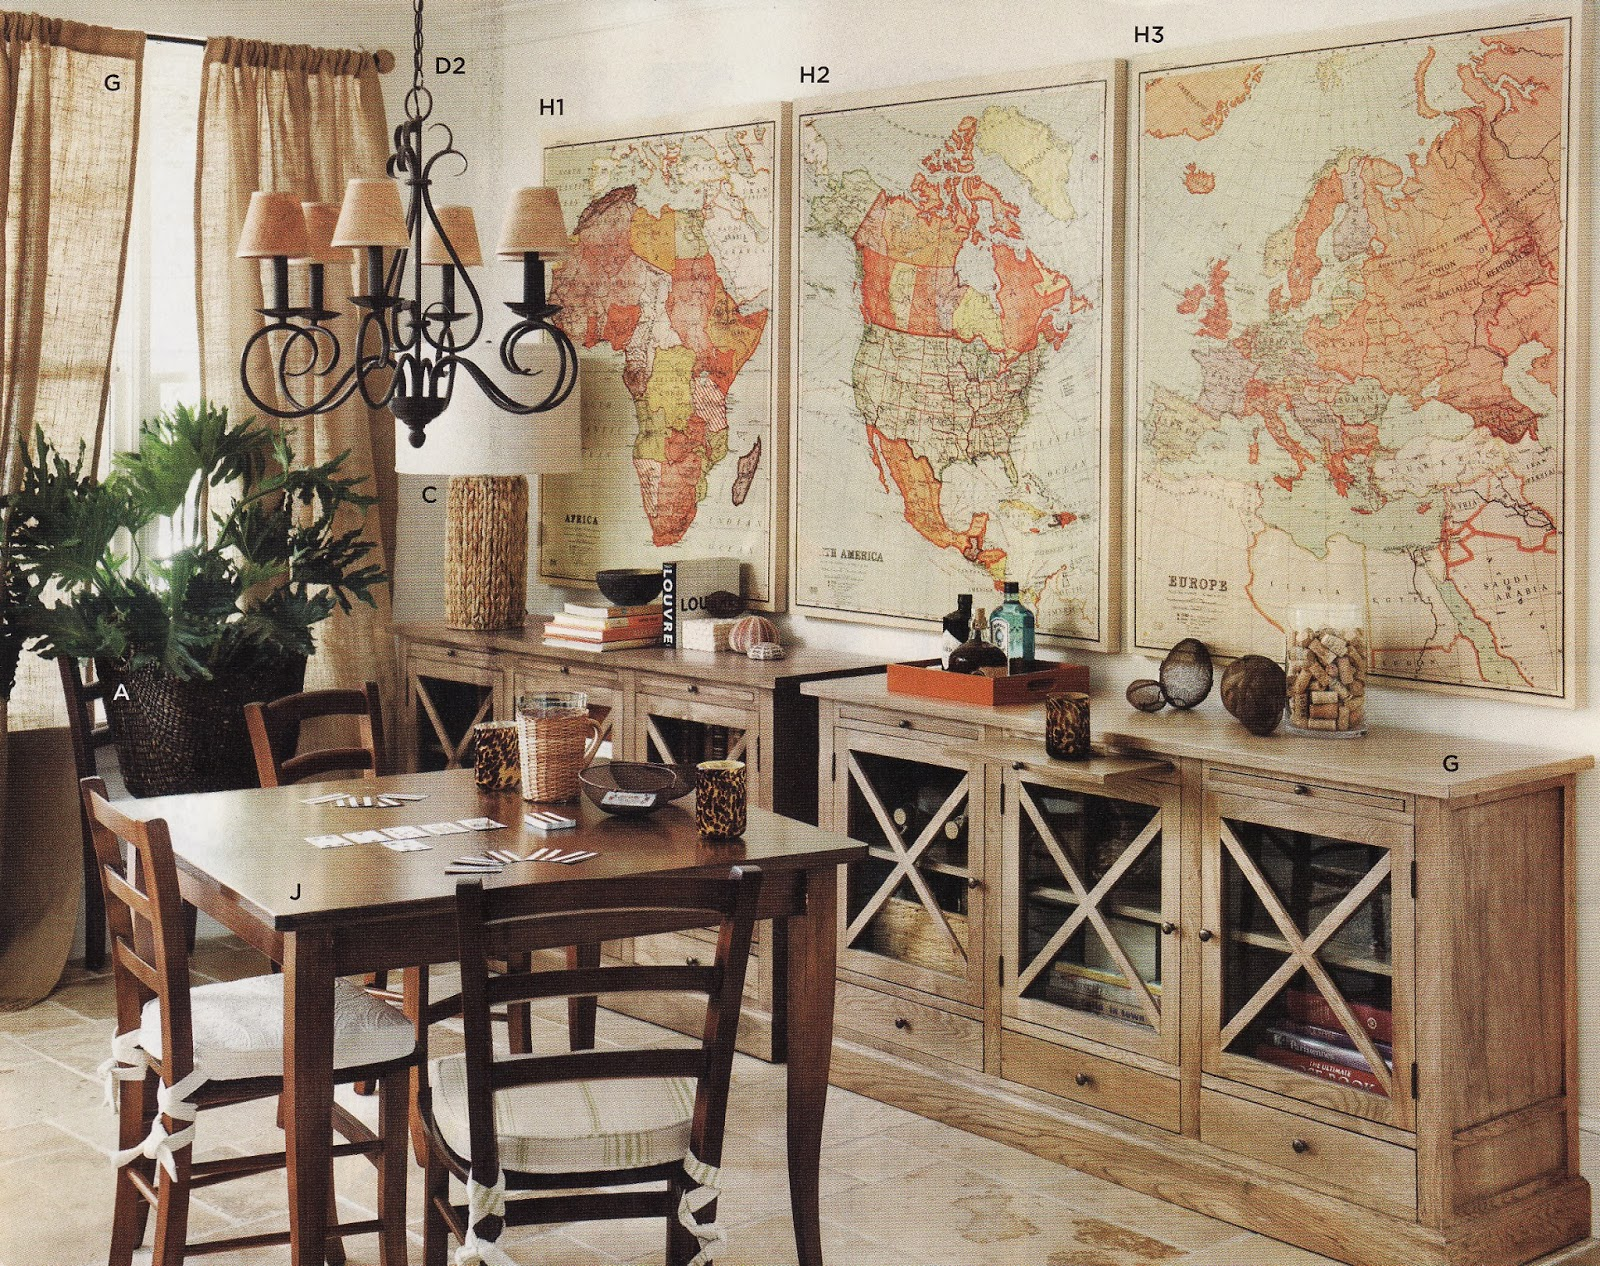 Creative juices decor oh for the love of maps home for Home dekoration